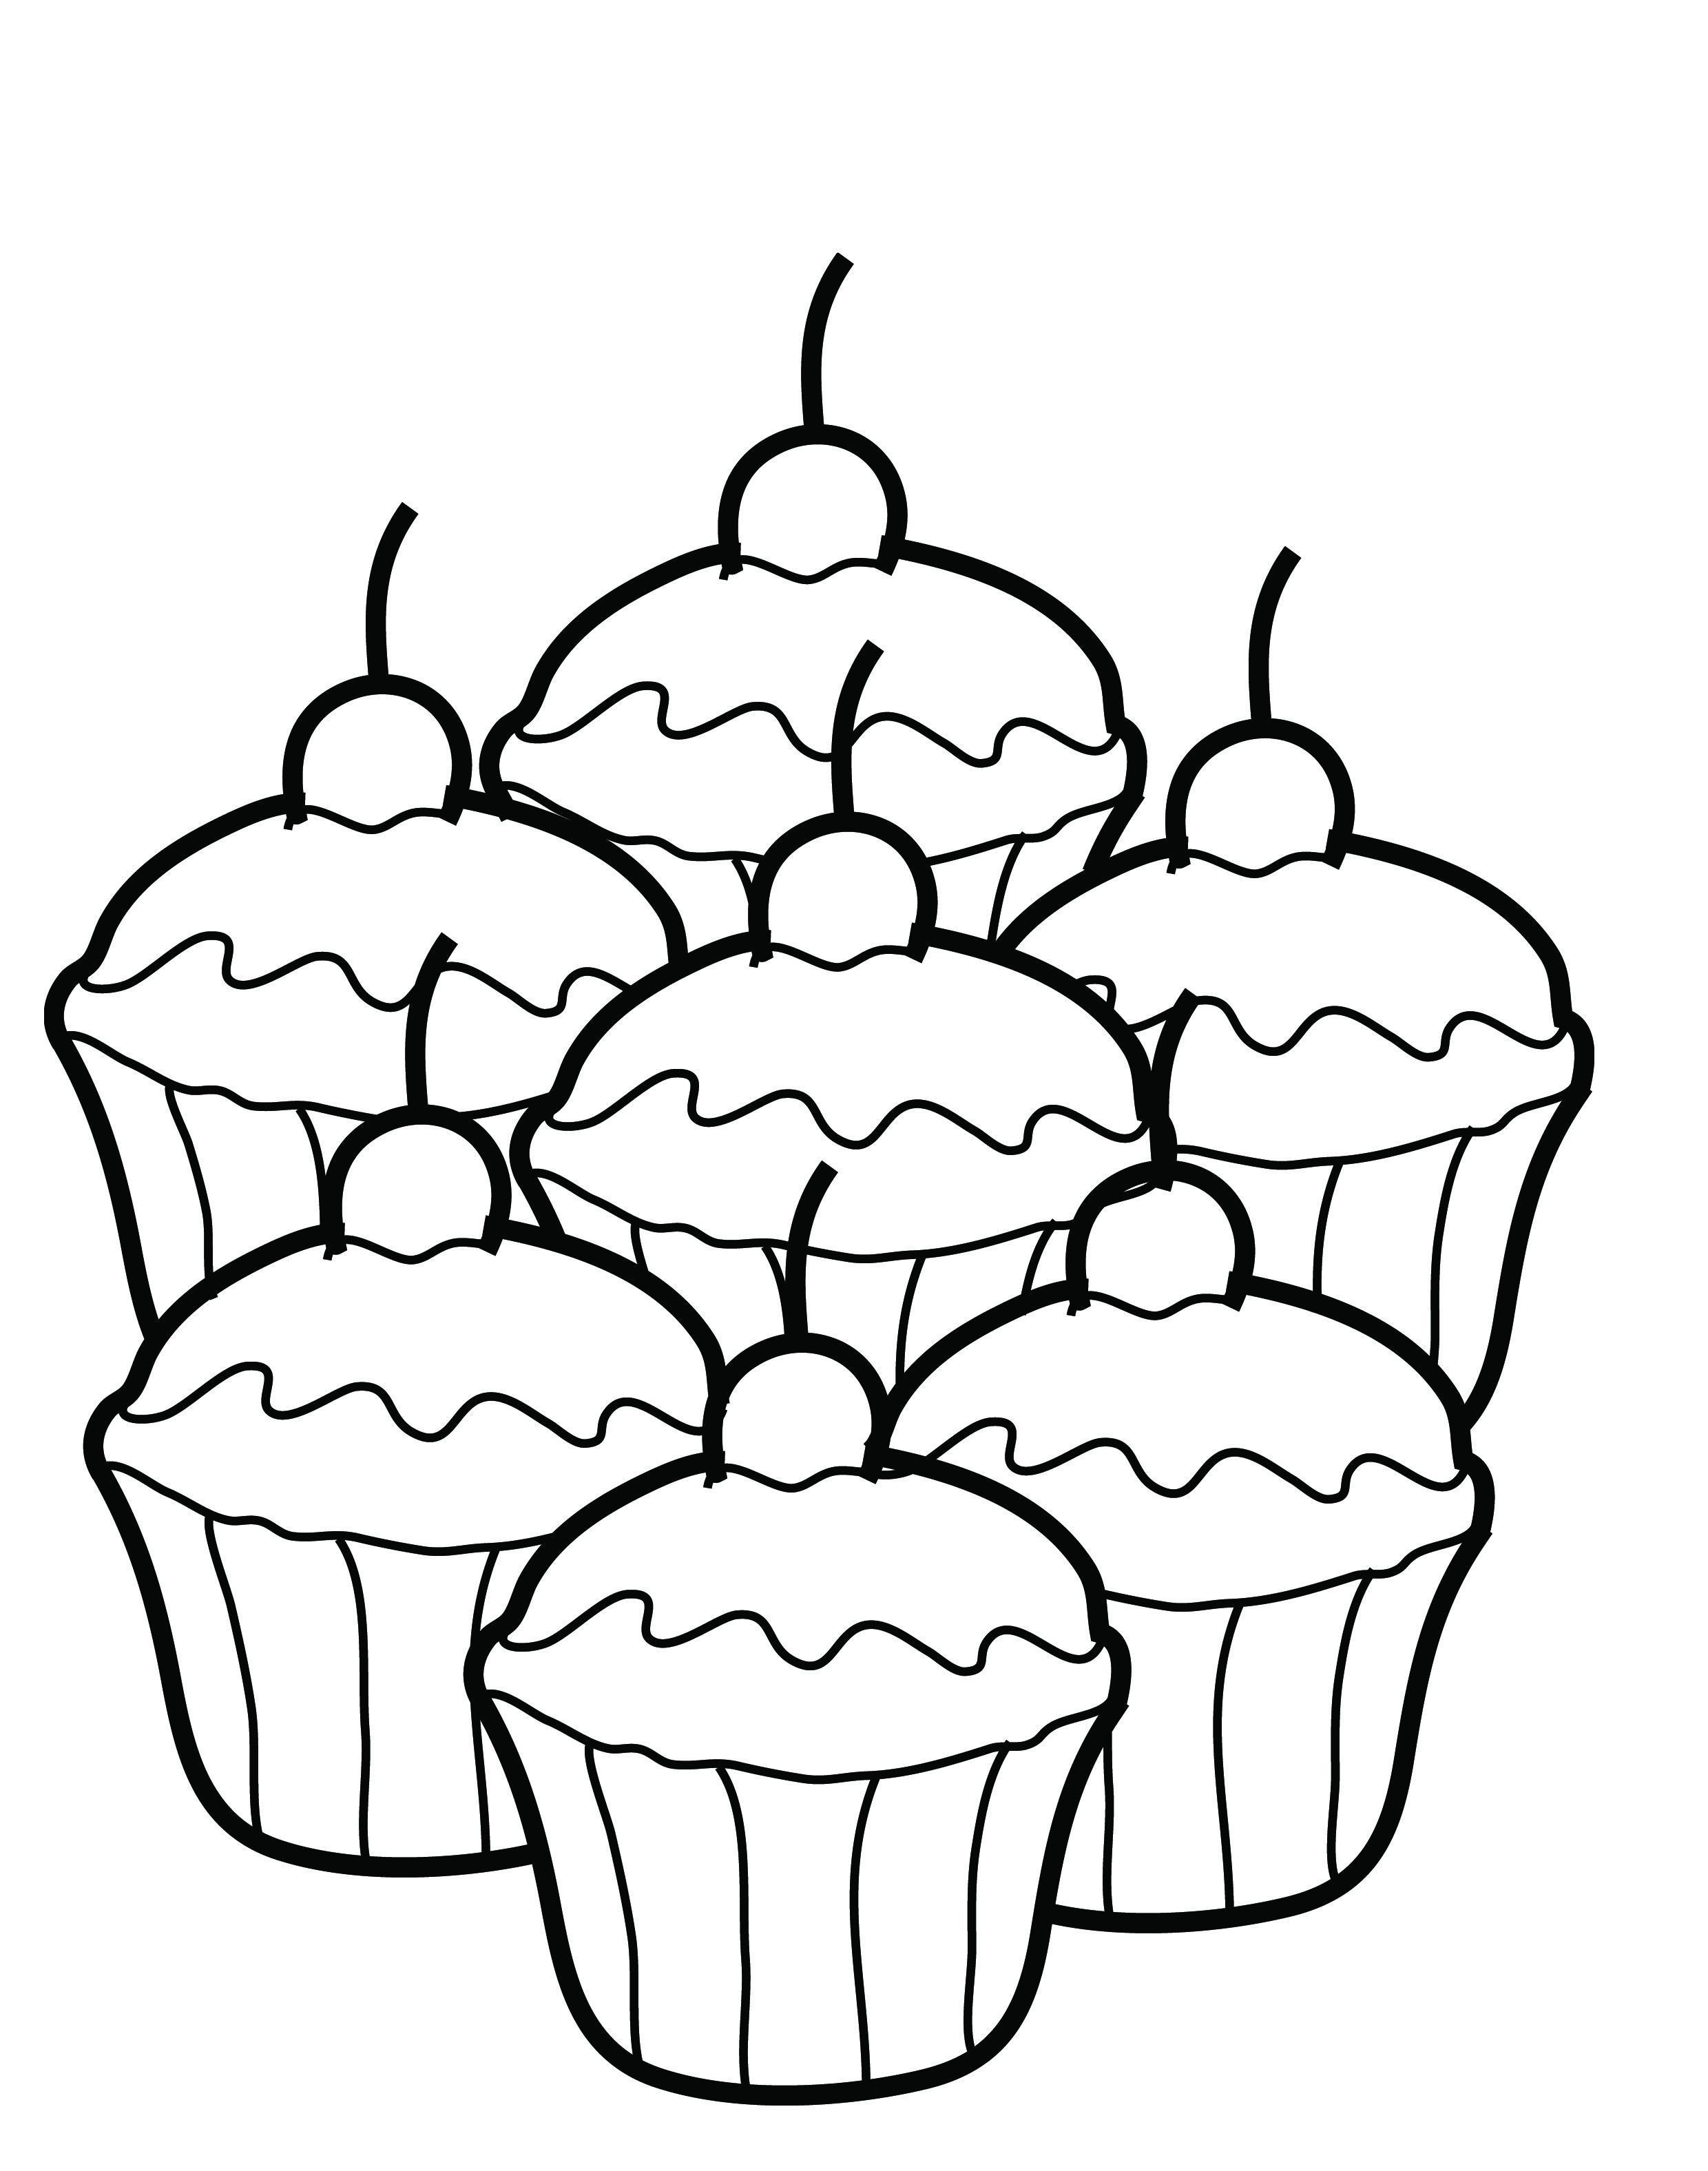 Free Printable Cupcake Coloring Pages For Kids - printable preschool coloring pages